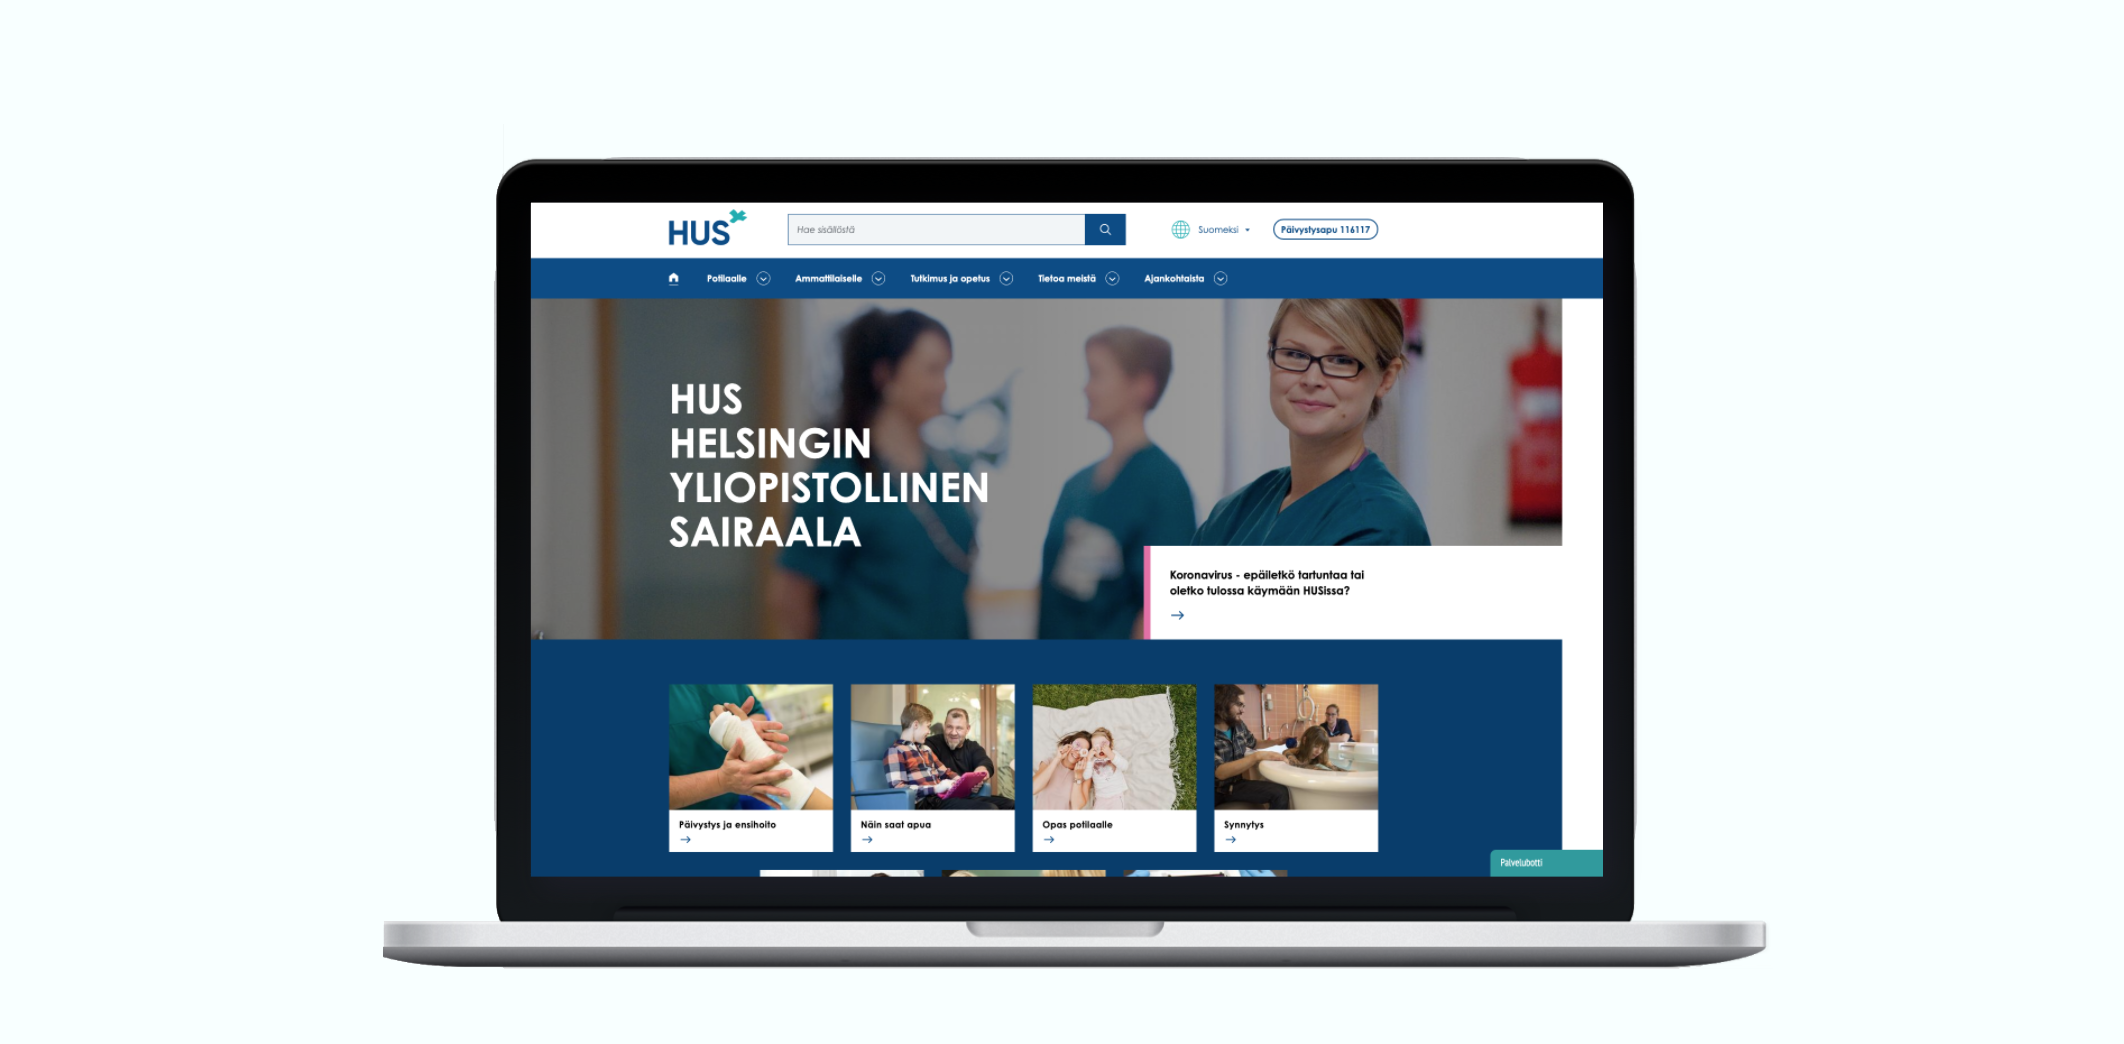 Frontpage of hus.fi site after the renewal project by Wunder